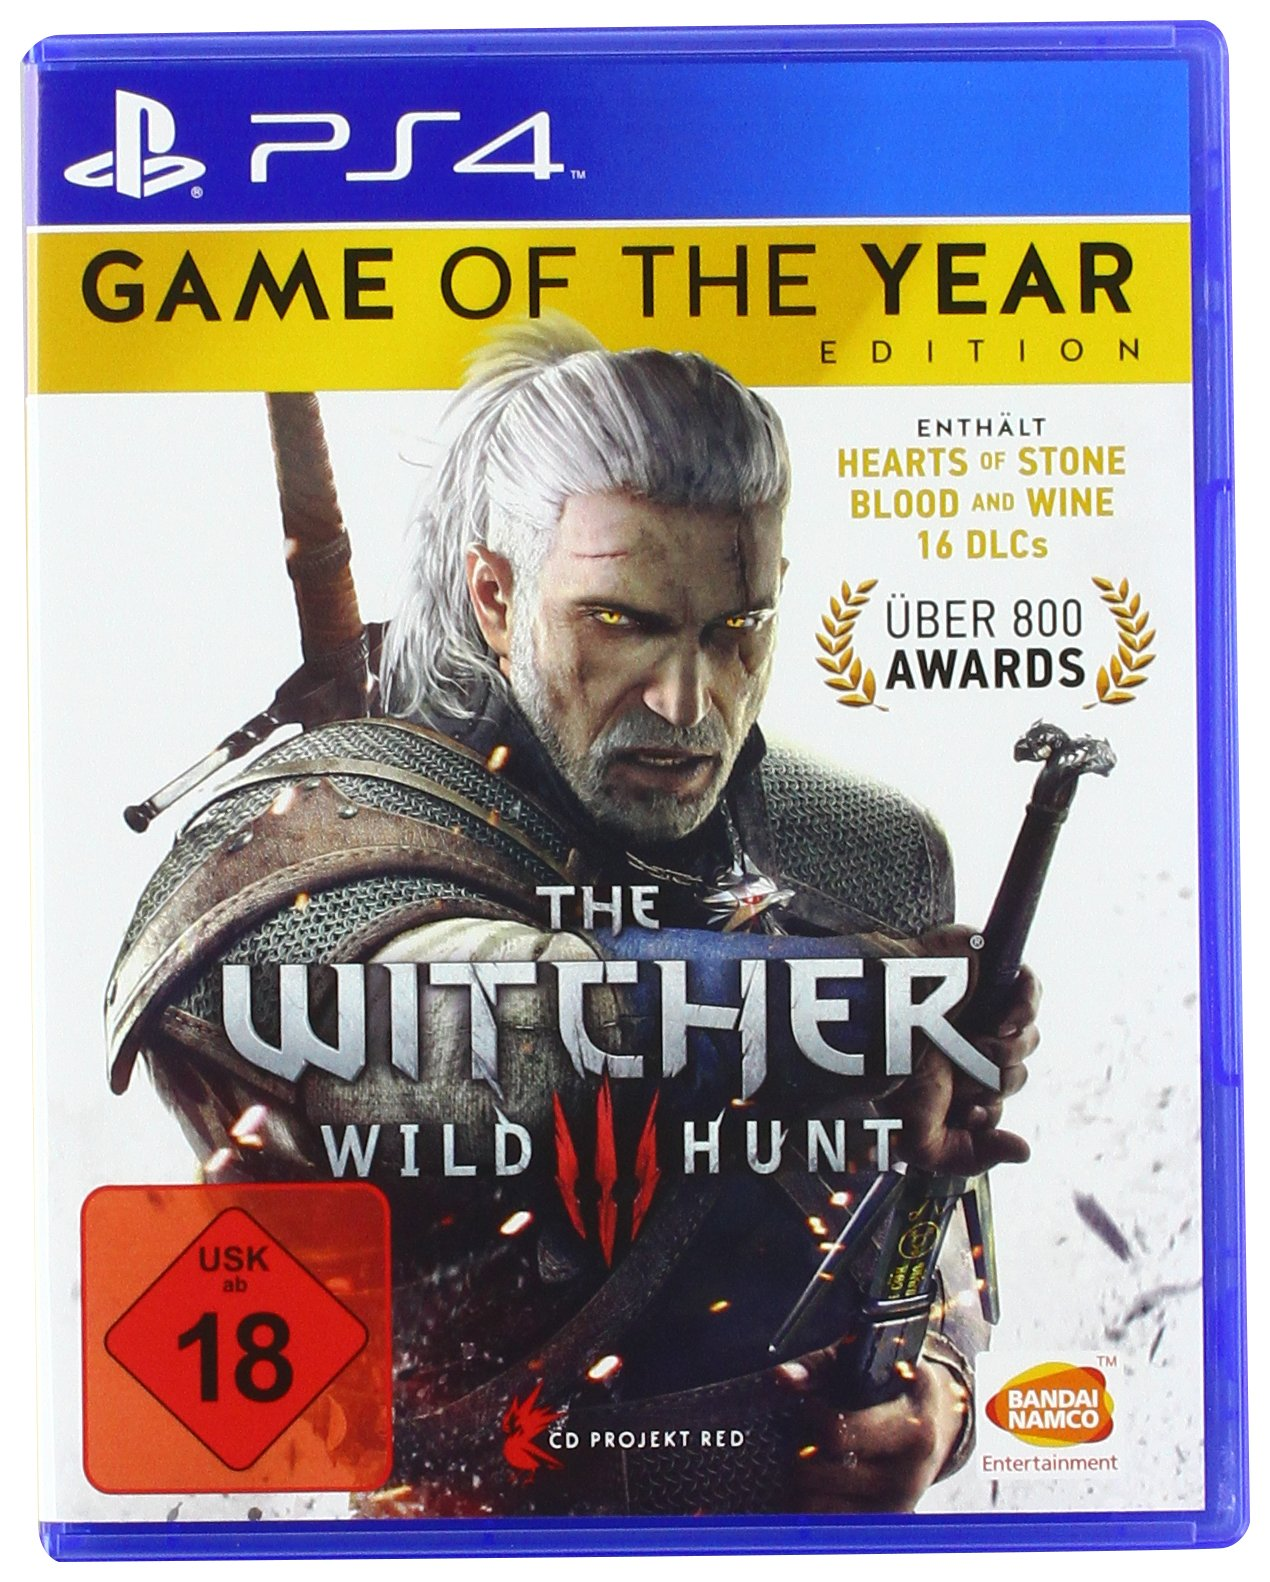 The Witcher 3: Wild Hunt - Game of the Year Edition - [PlayStation 4] product image